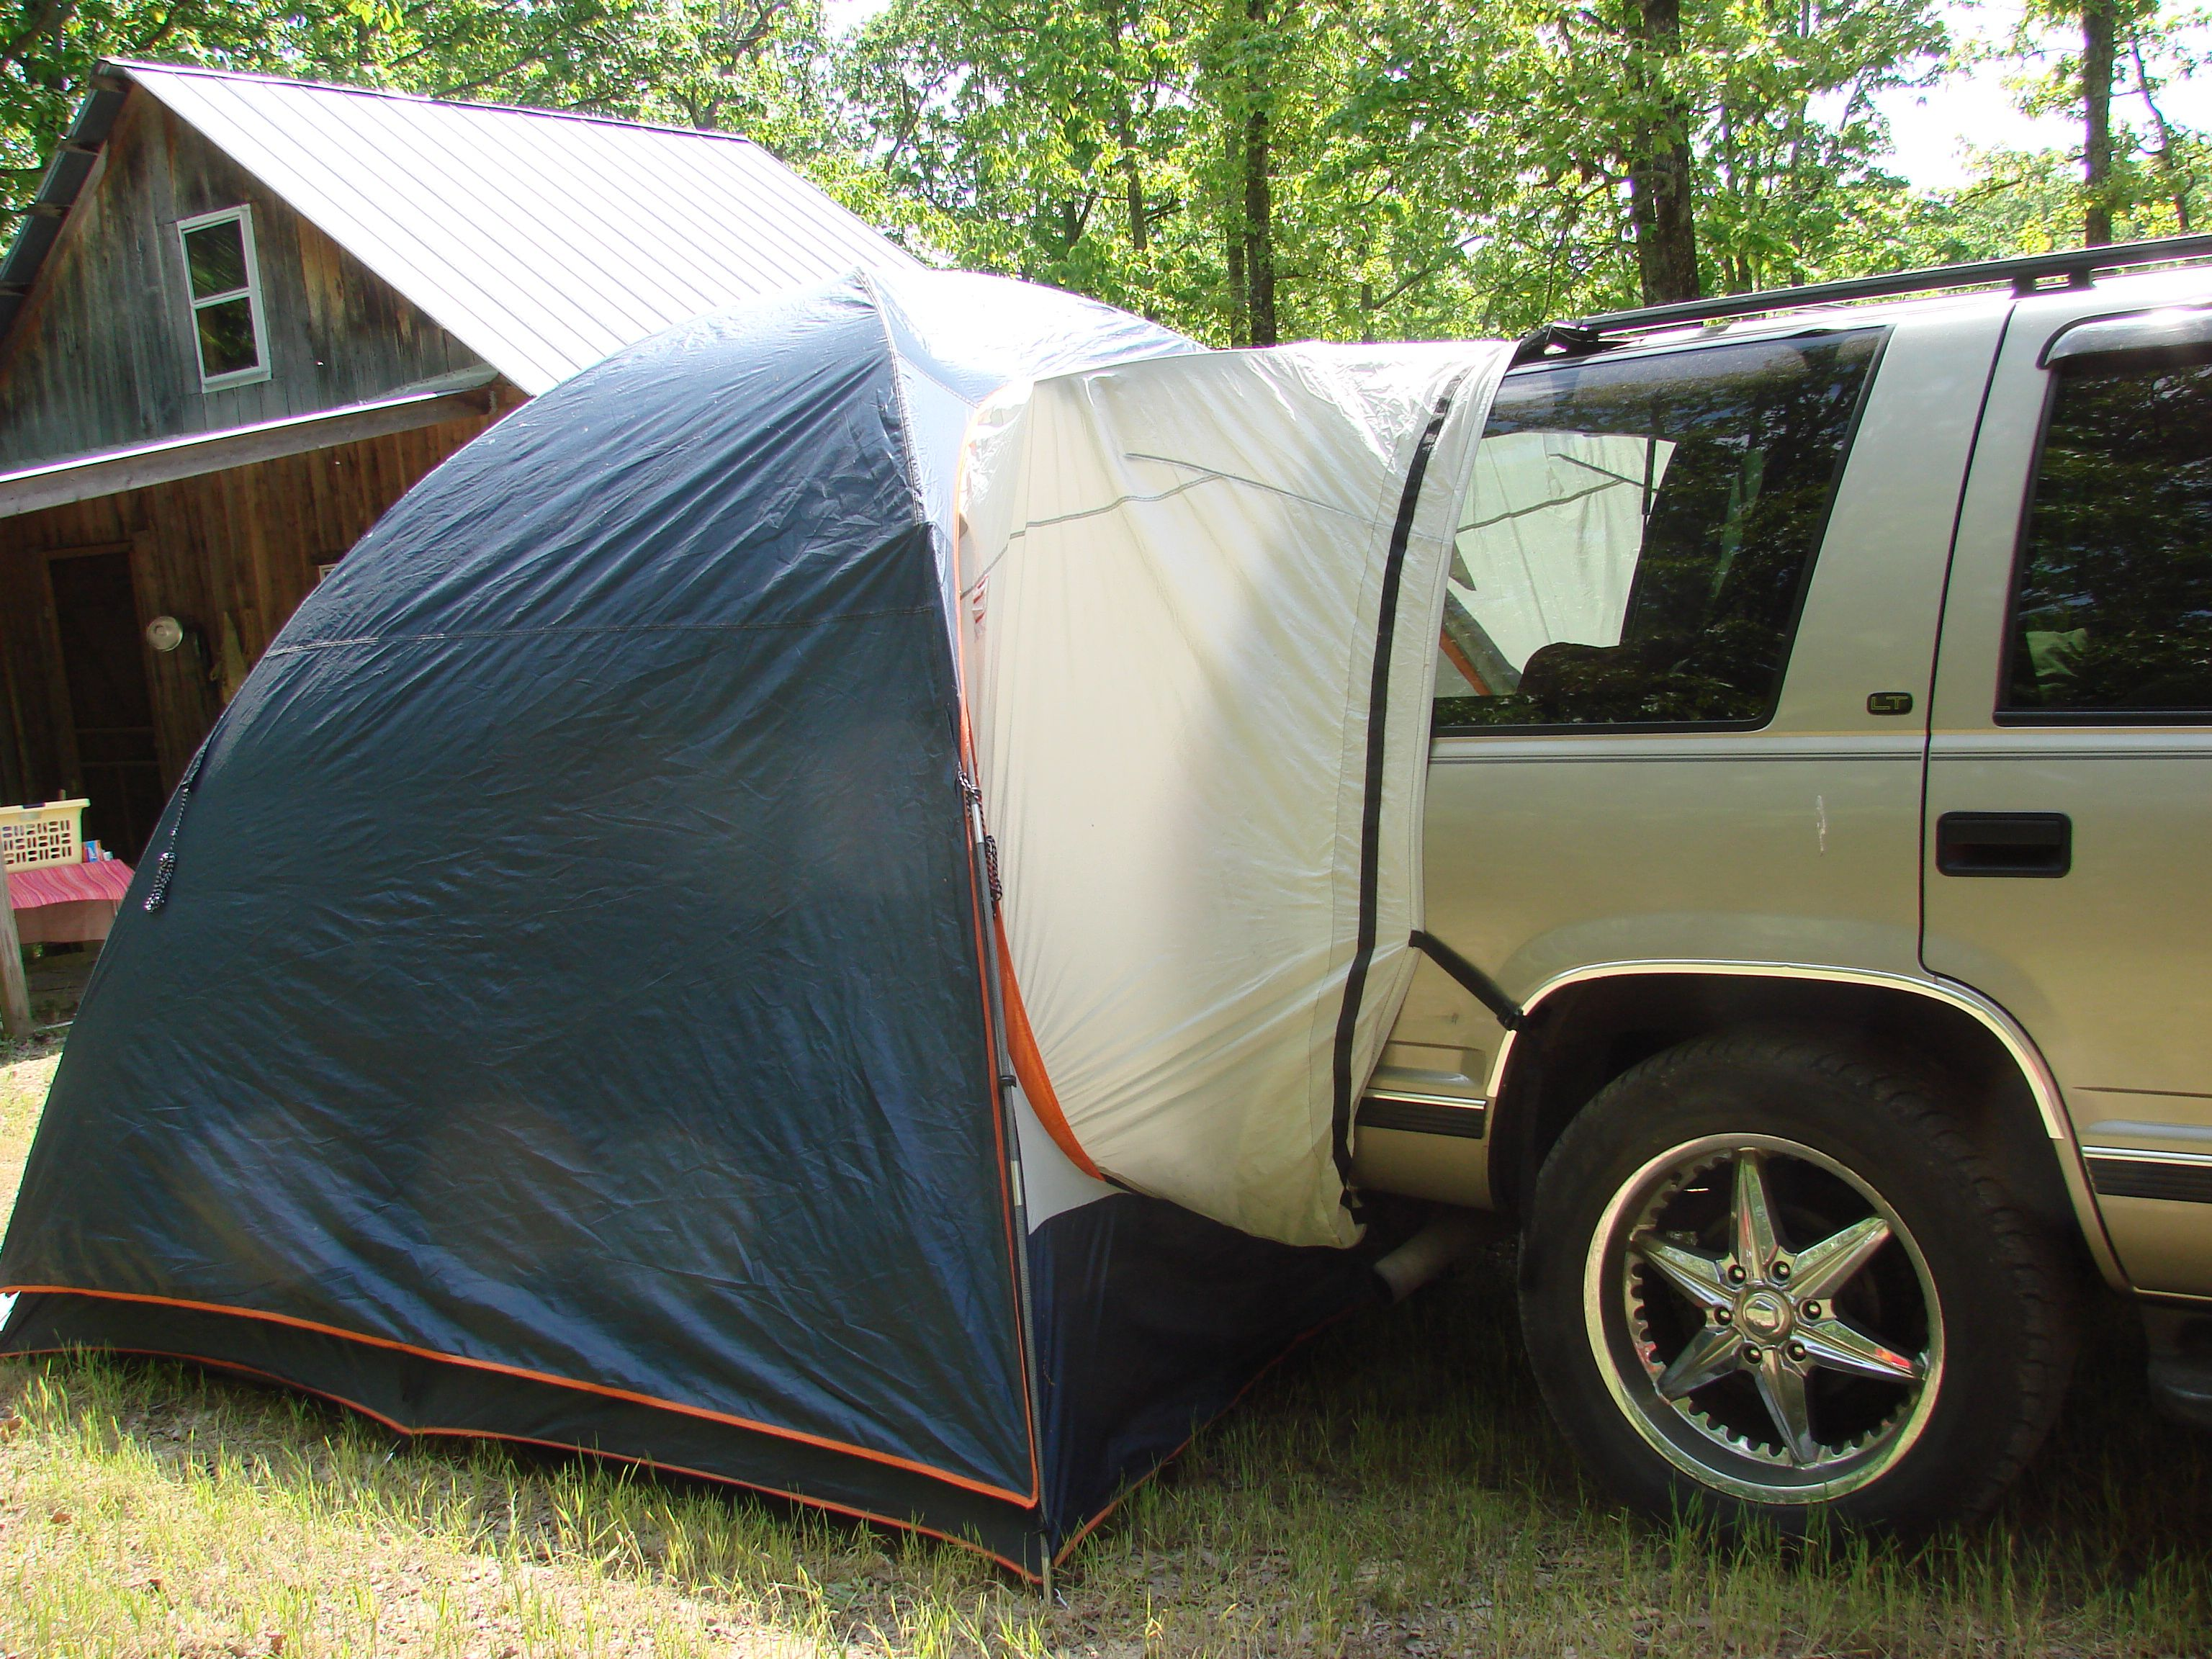 Camping Beds For Tents >> Tent Camping +++ Bed in SUV | Camping | Outdoors | Tent